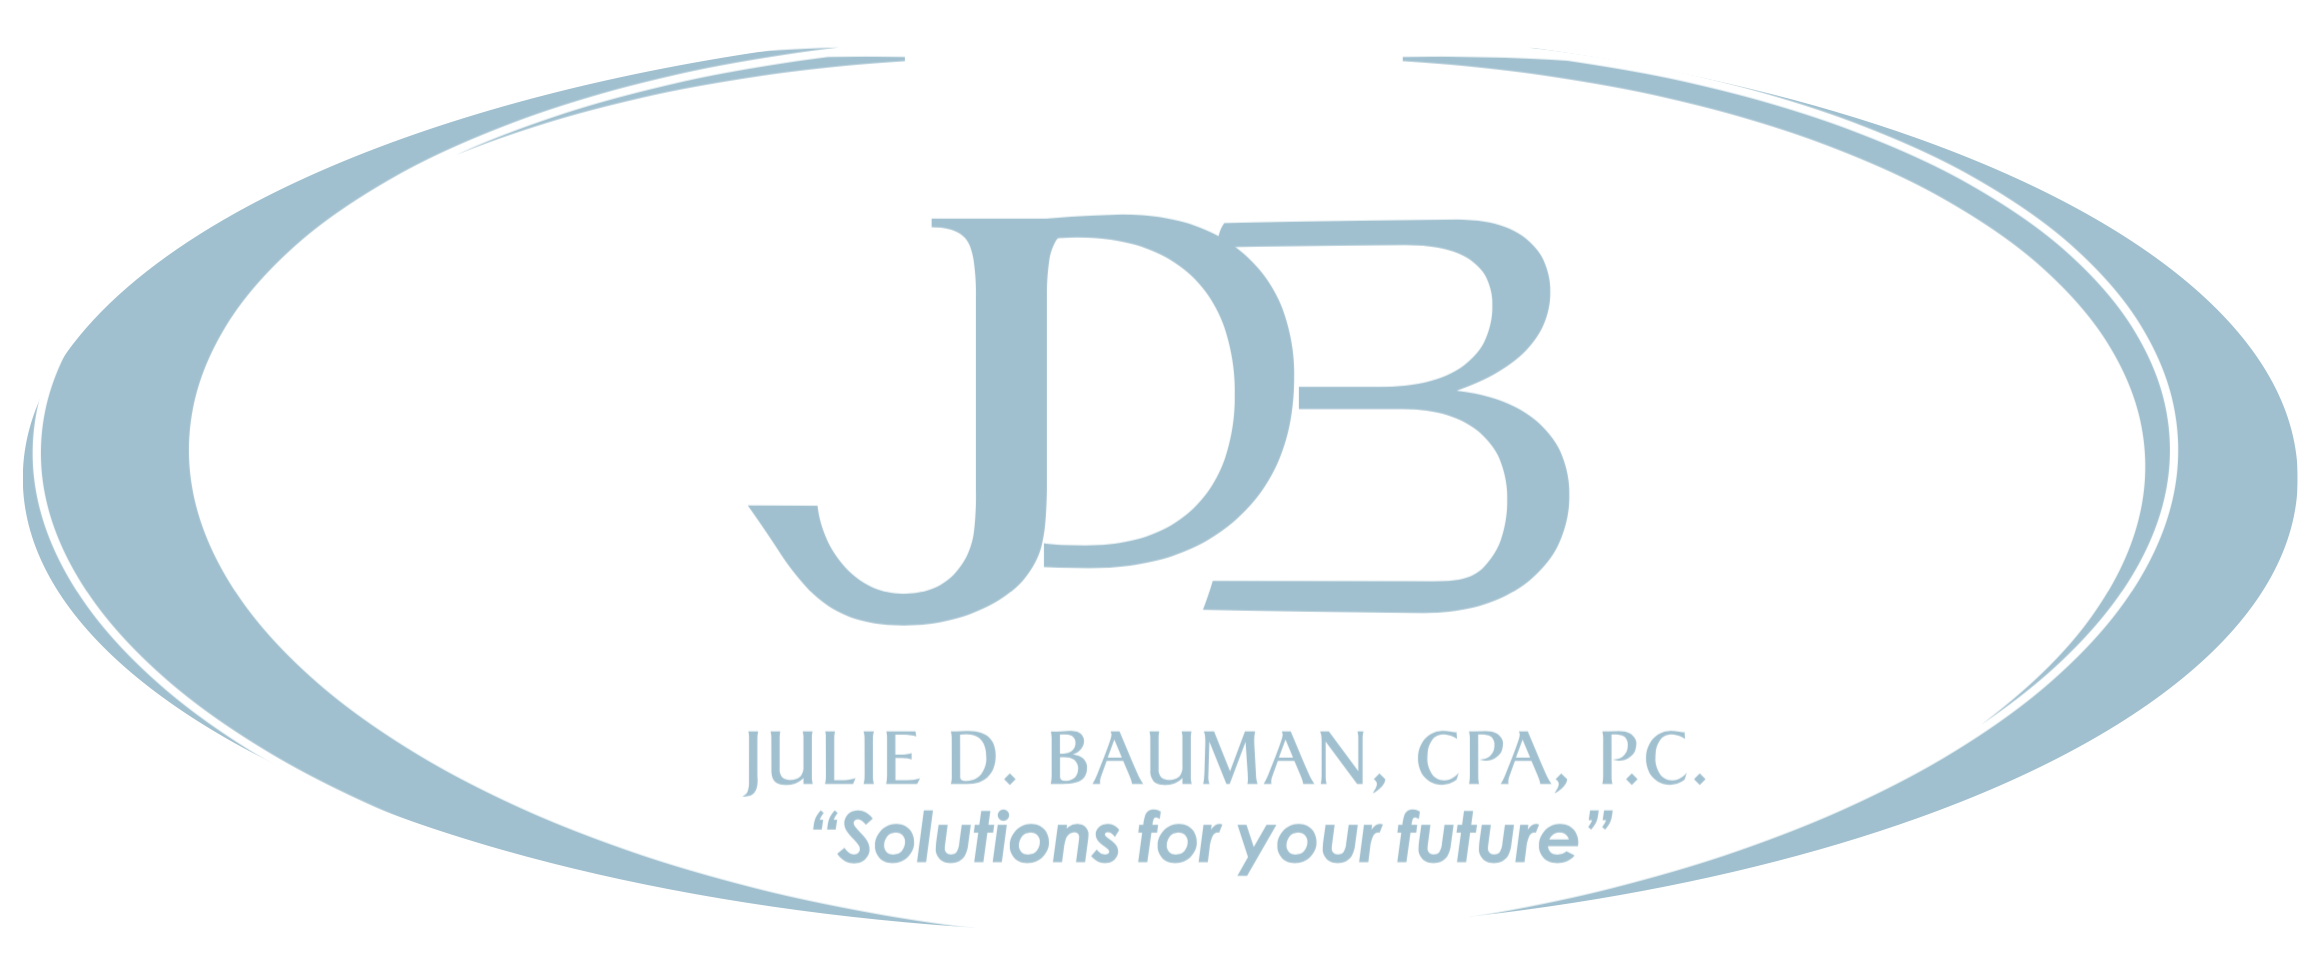 Virtual Accounting Firm | Podcasts Page | Julie D. Bauman, CPA, PC